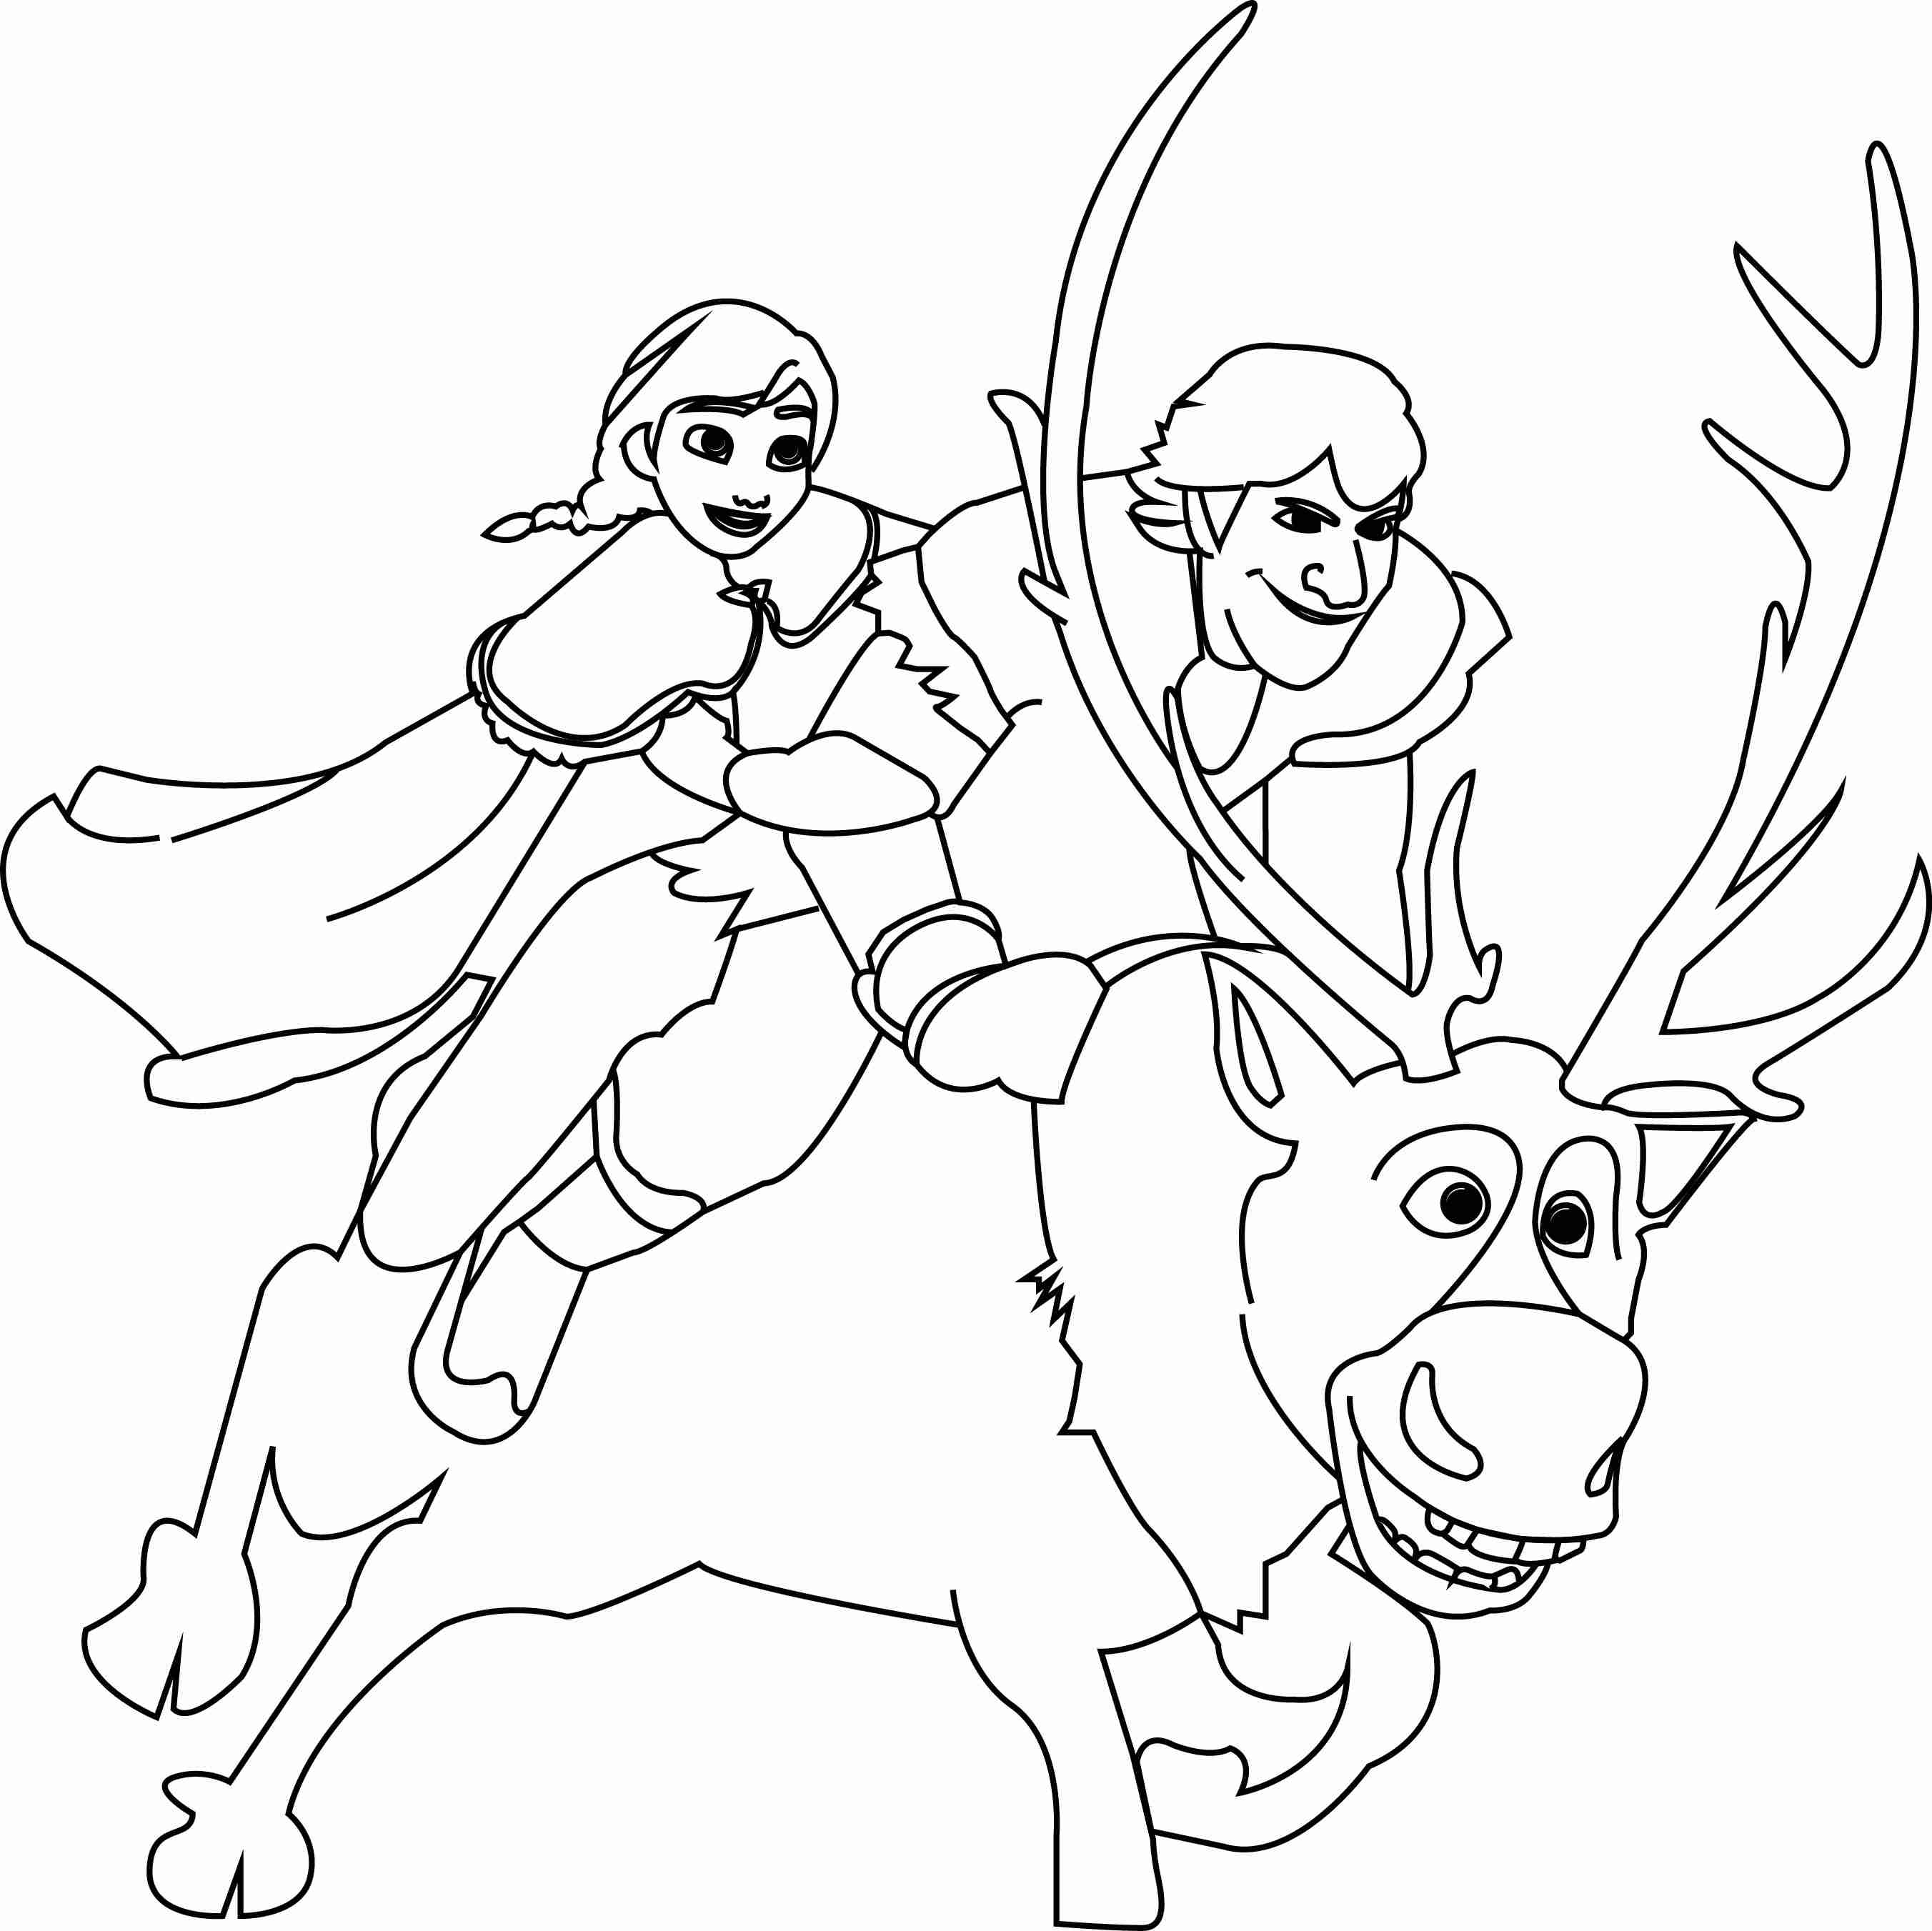 frozen sven coloring pages sven frozen coloring pages at getdrawings free download sven coloring frozen pages